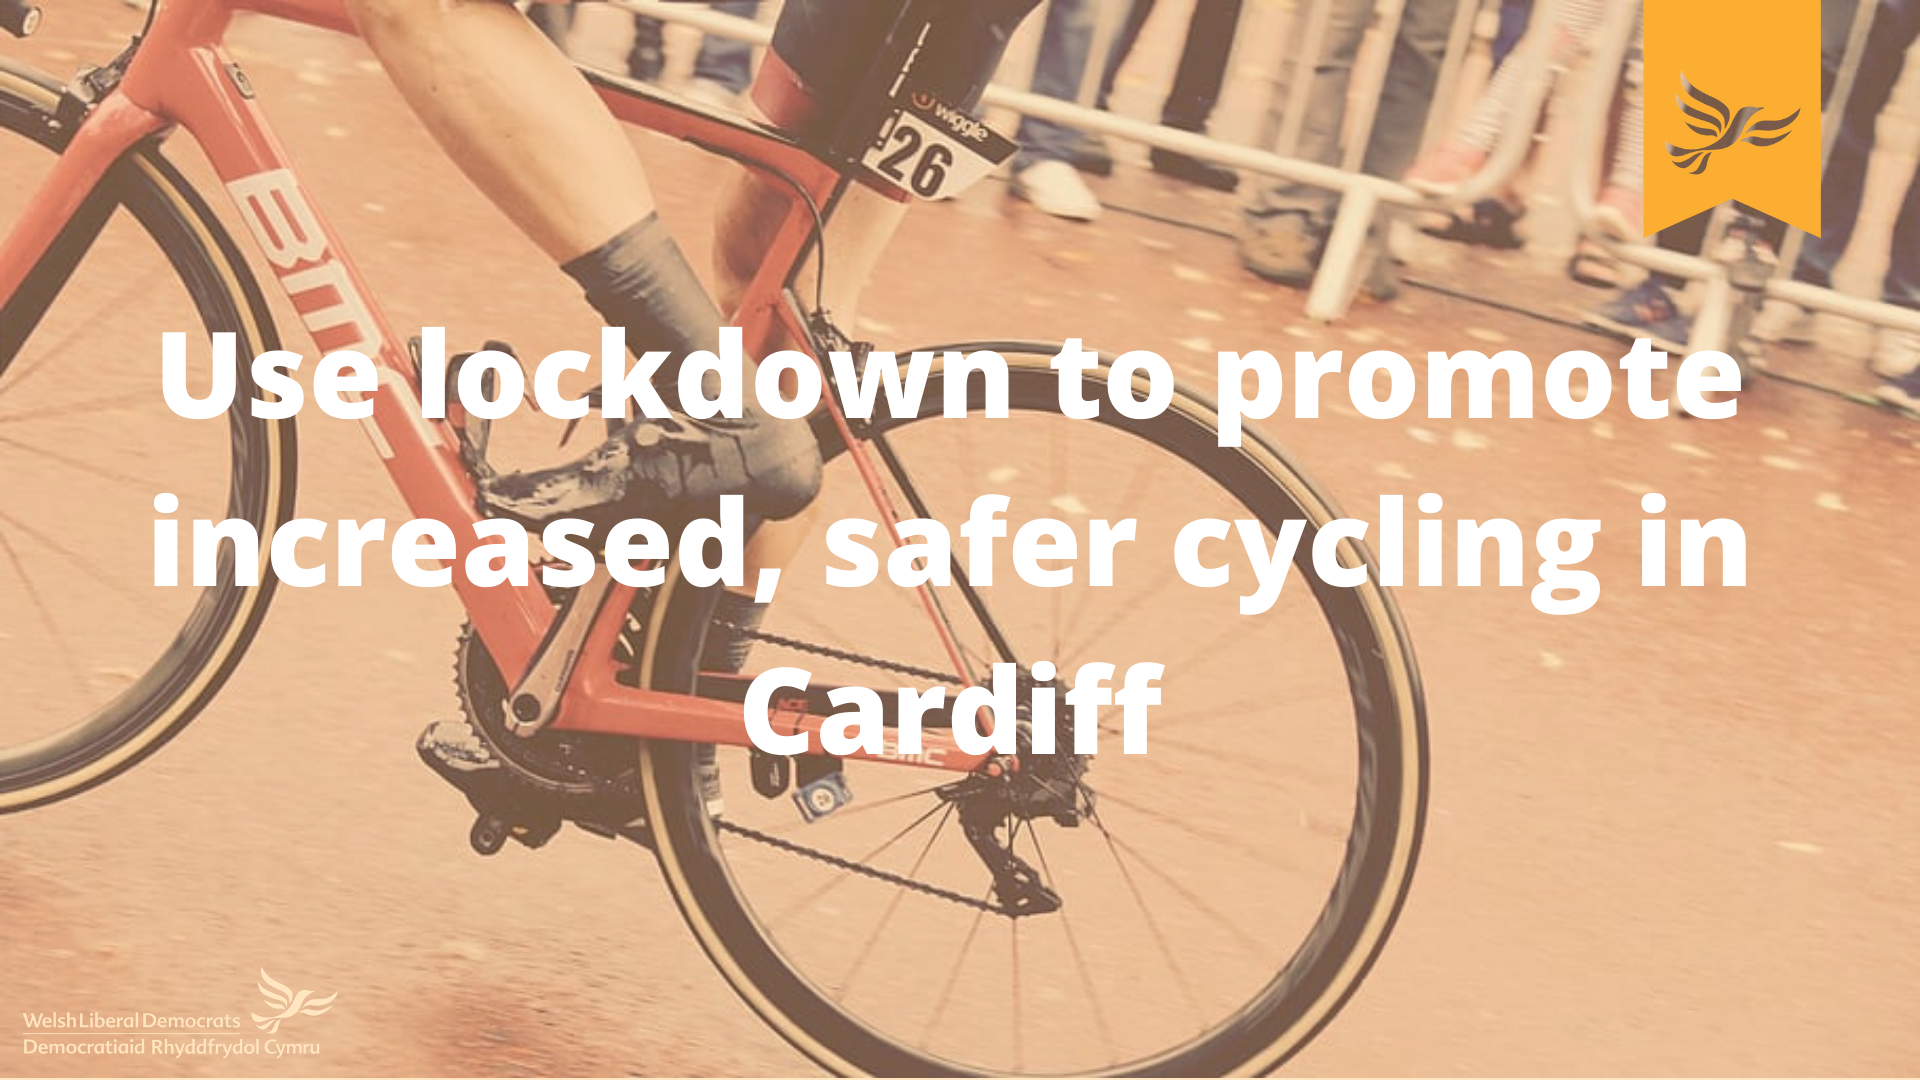 Use Lockdown to Promote Increased, Safer Cycling - Cardiff Lib Dems